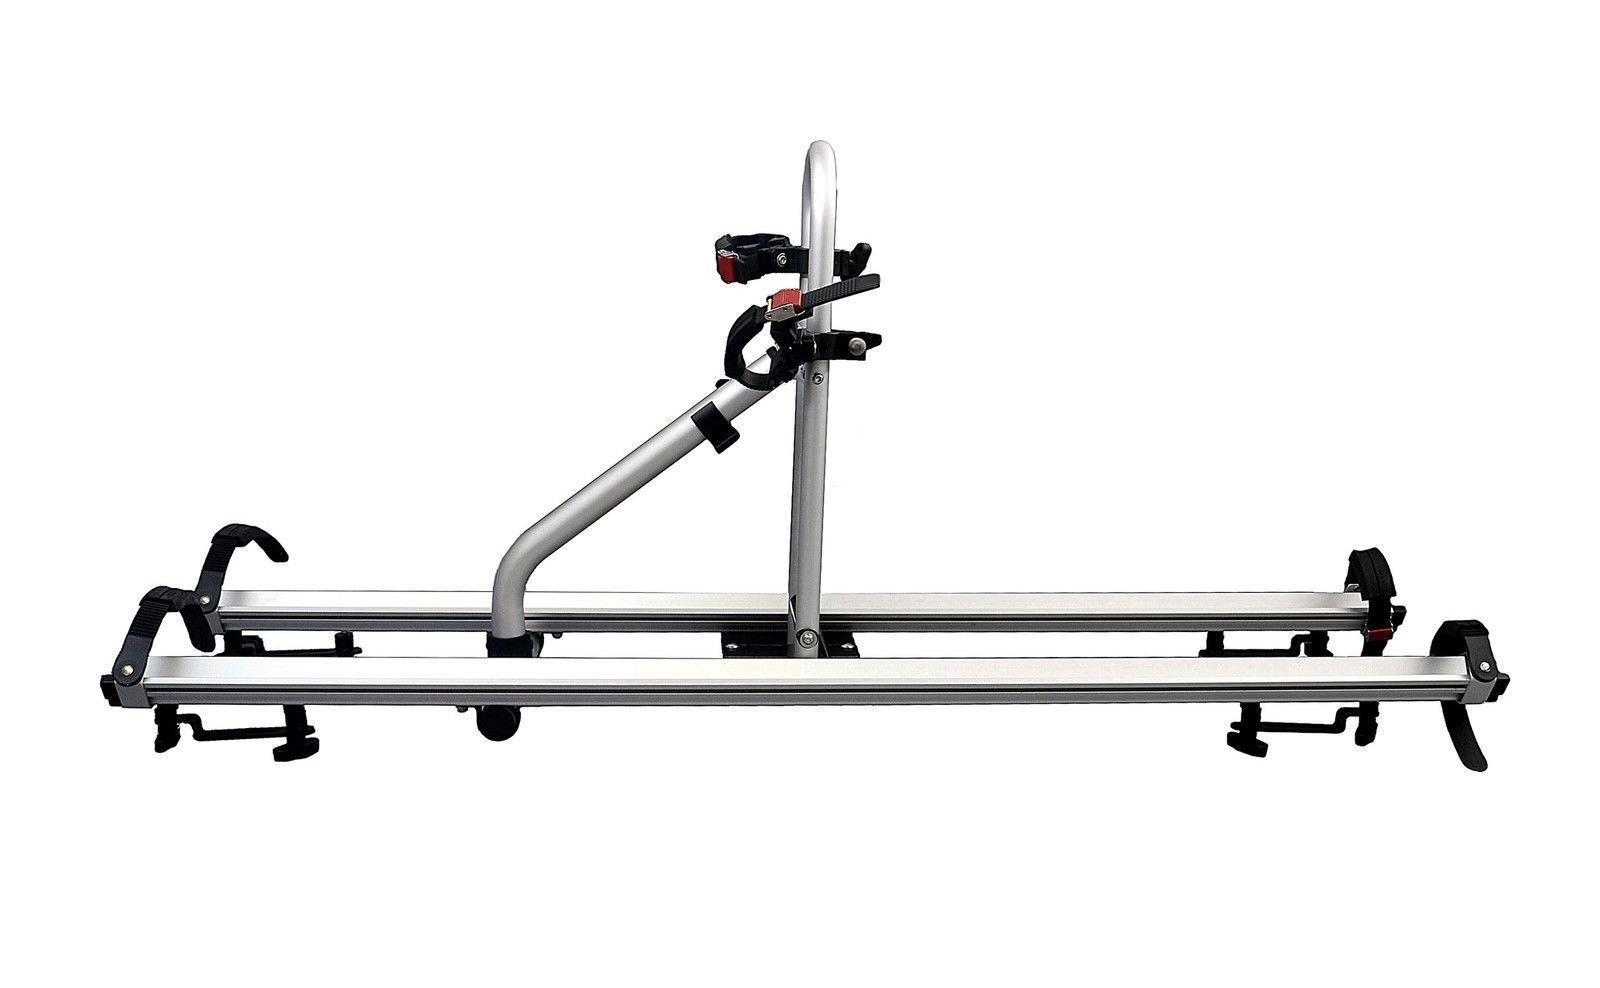 CyclingDeal Alloy Car Roof Bicycle Carrier Rack for 2 Bikes Max Load 66 lbs